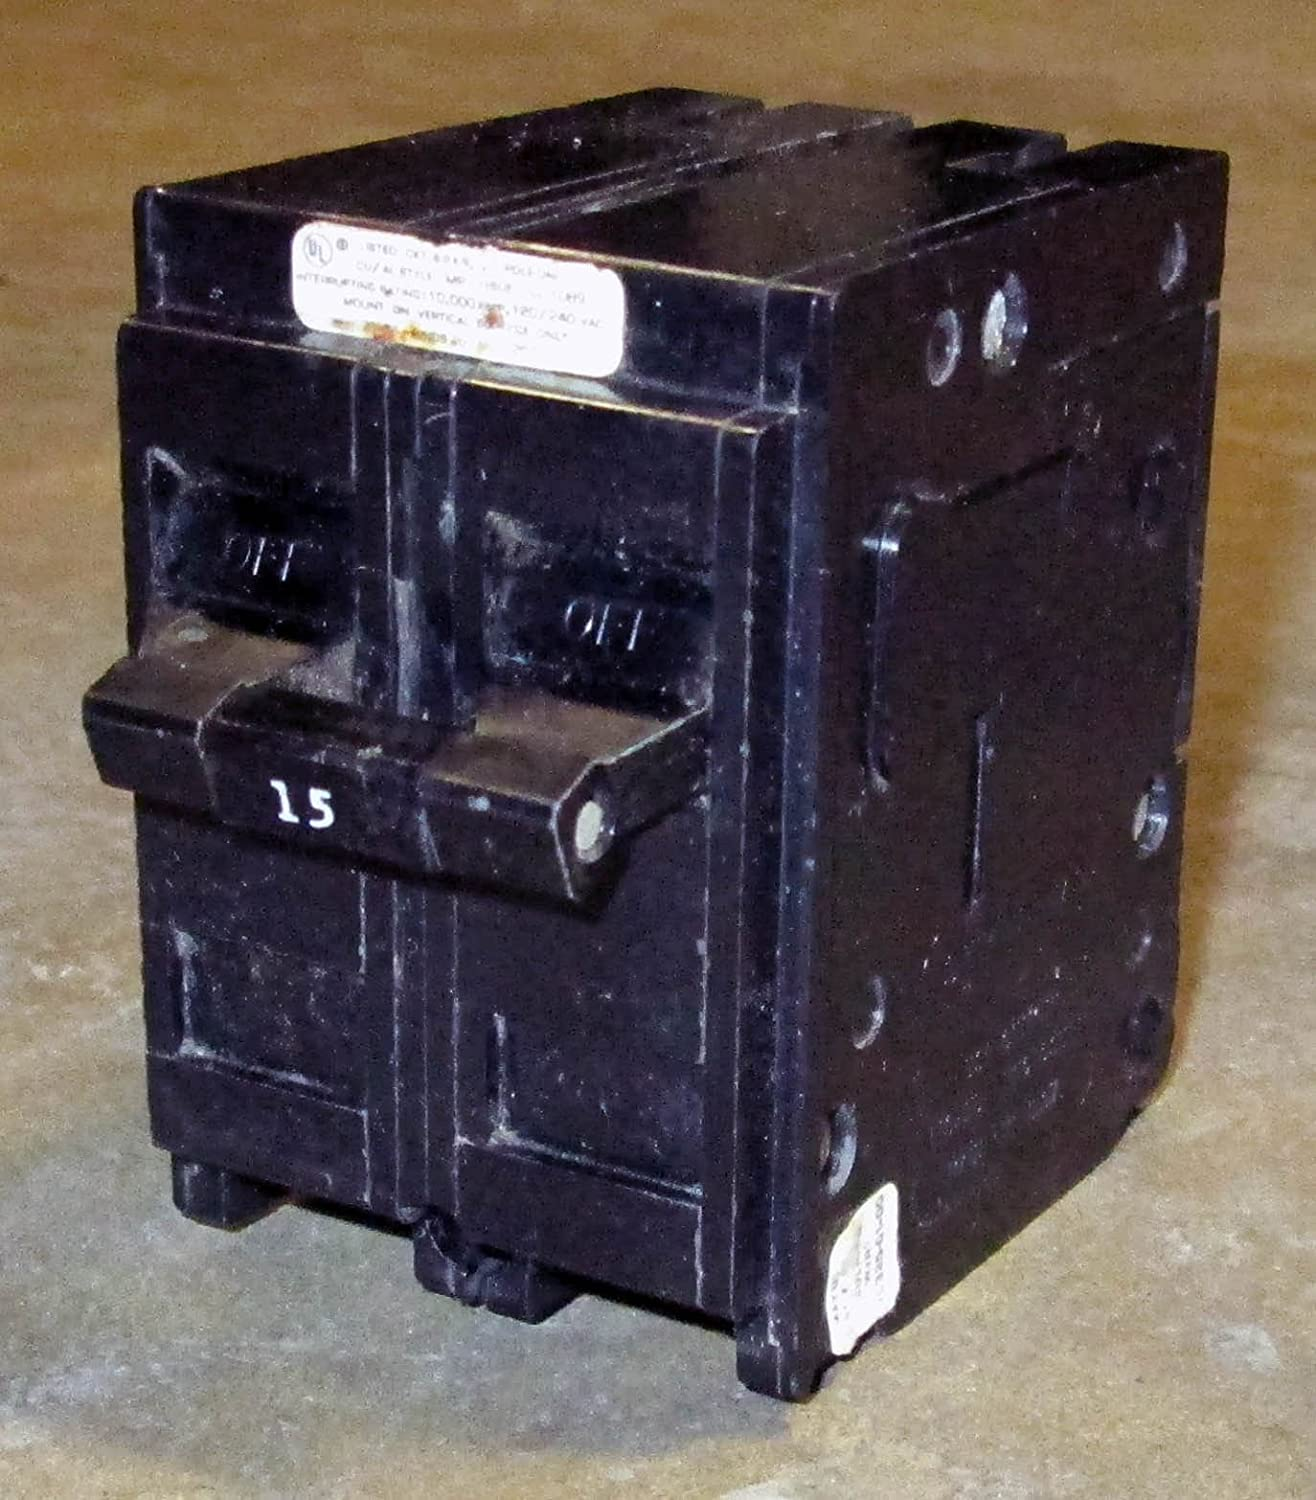 2 Pole Crouse Hinds MP215 15 Amp Circuit Breaker NEW